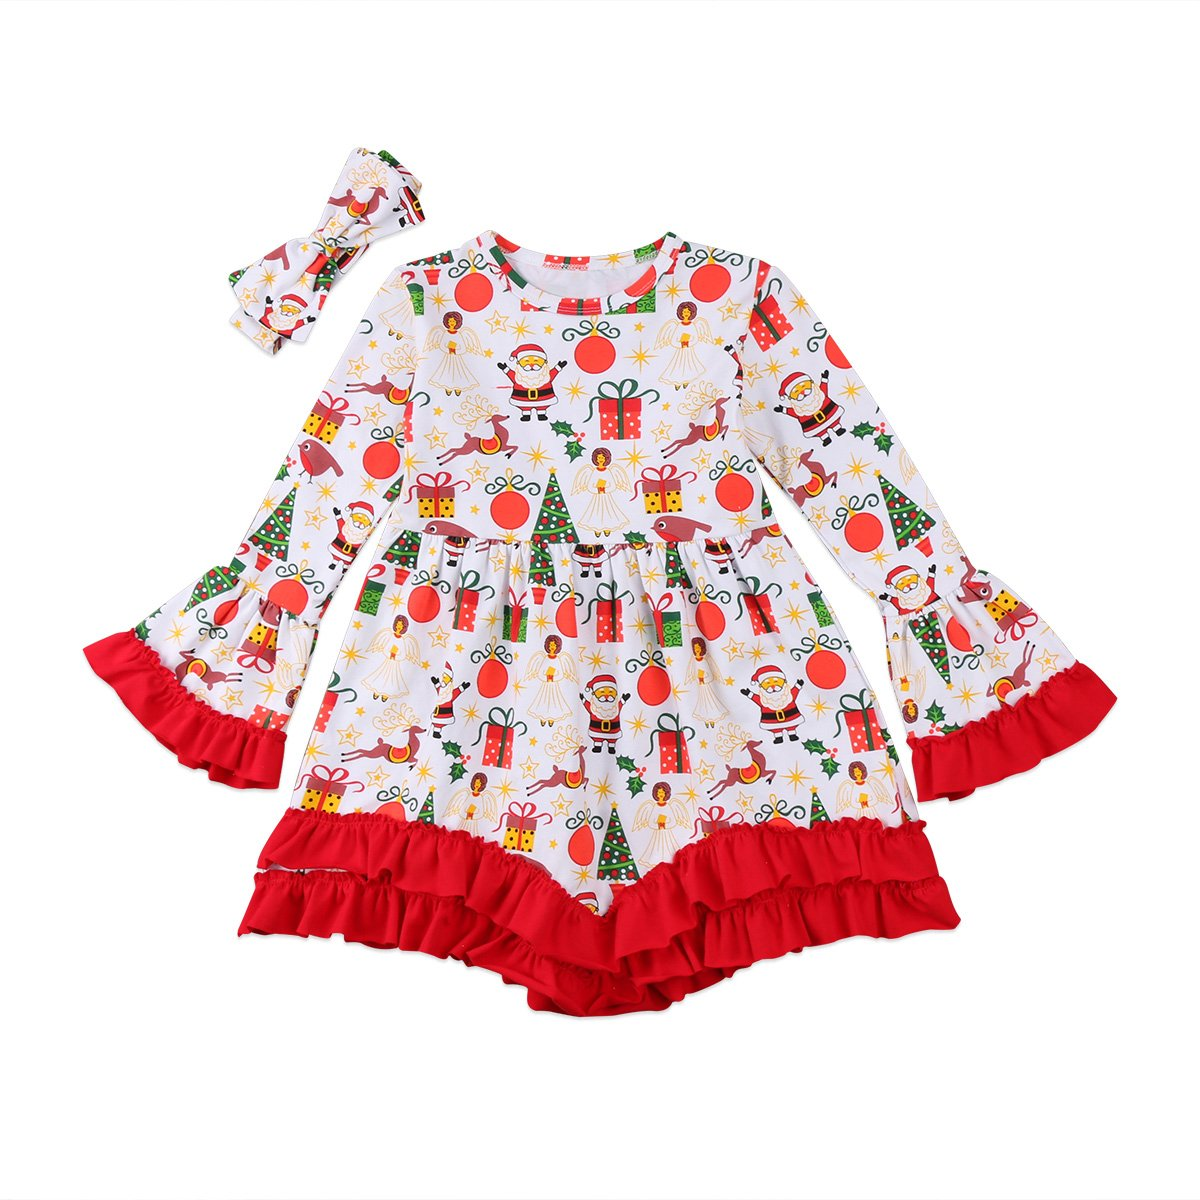 Red Santa Deer Print, 6-7 Years Christmas Apparel Baby Girls Long Sleeve Ruffle Sleeve Party Tutu Dress Headband Outfits